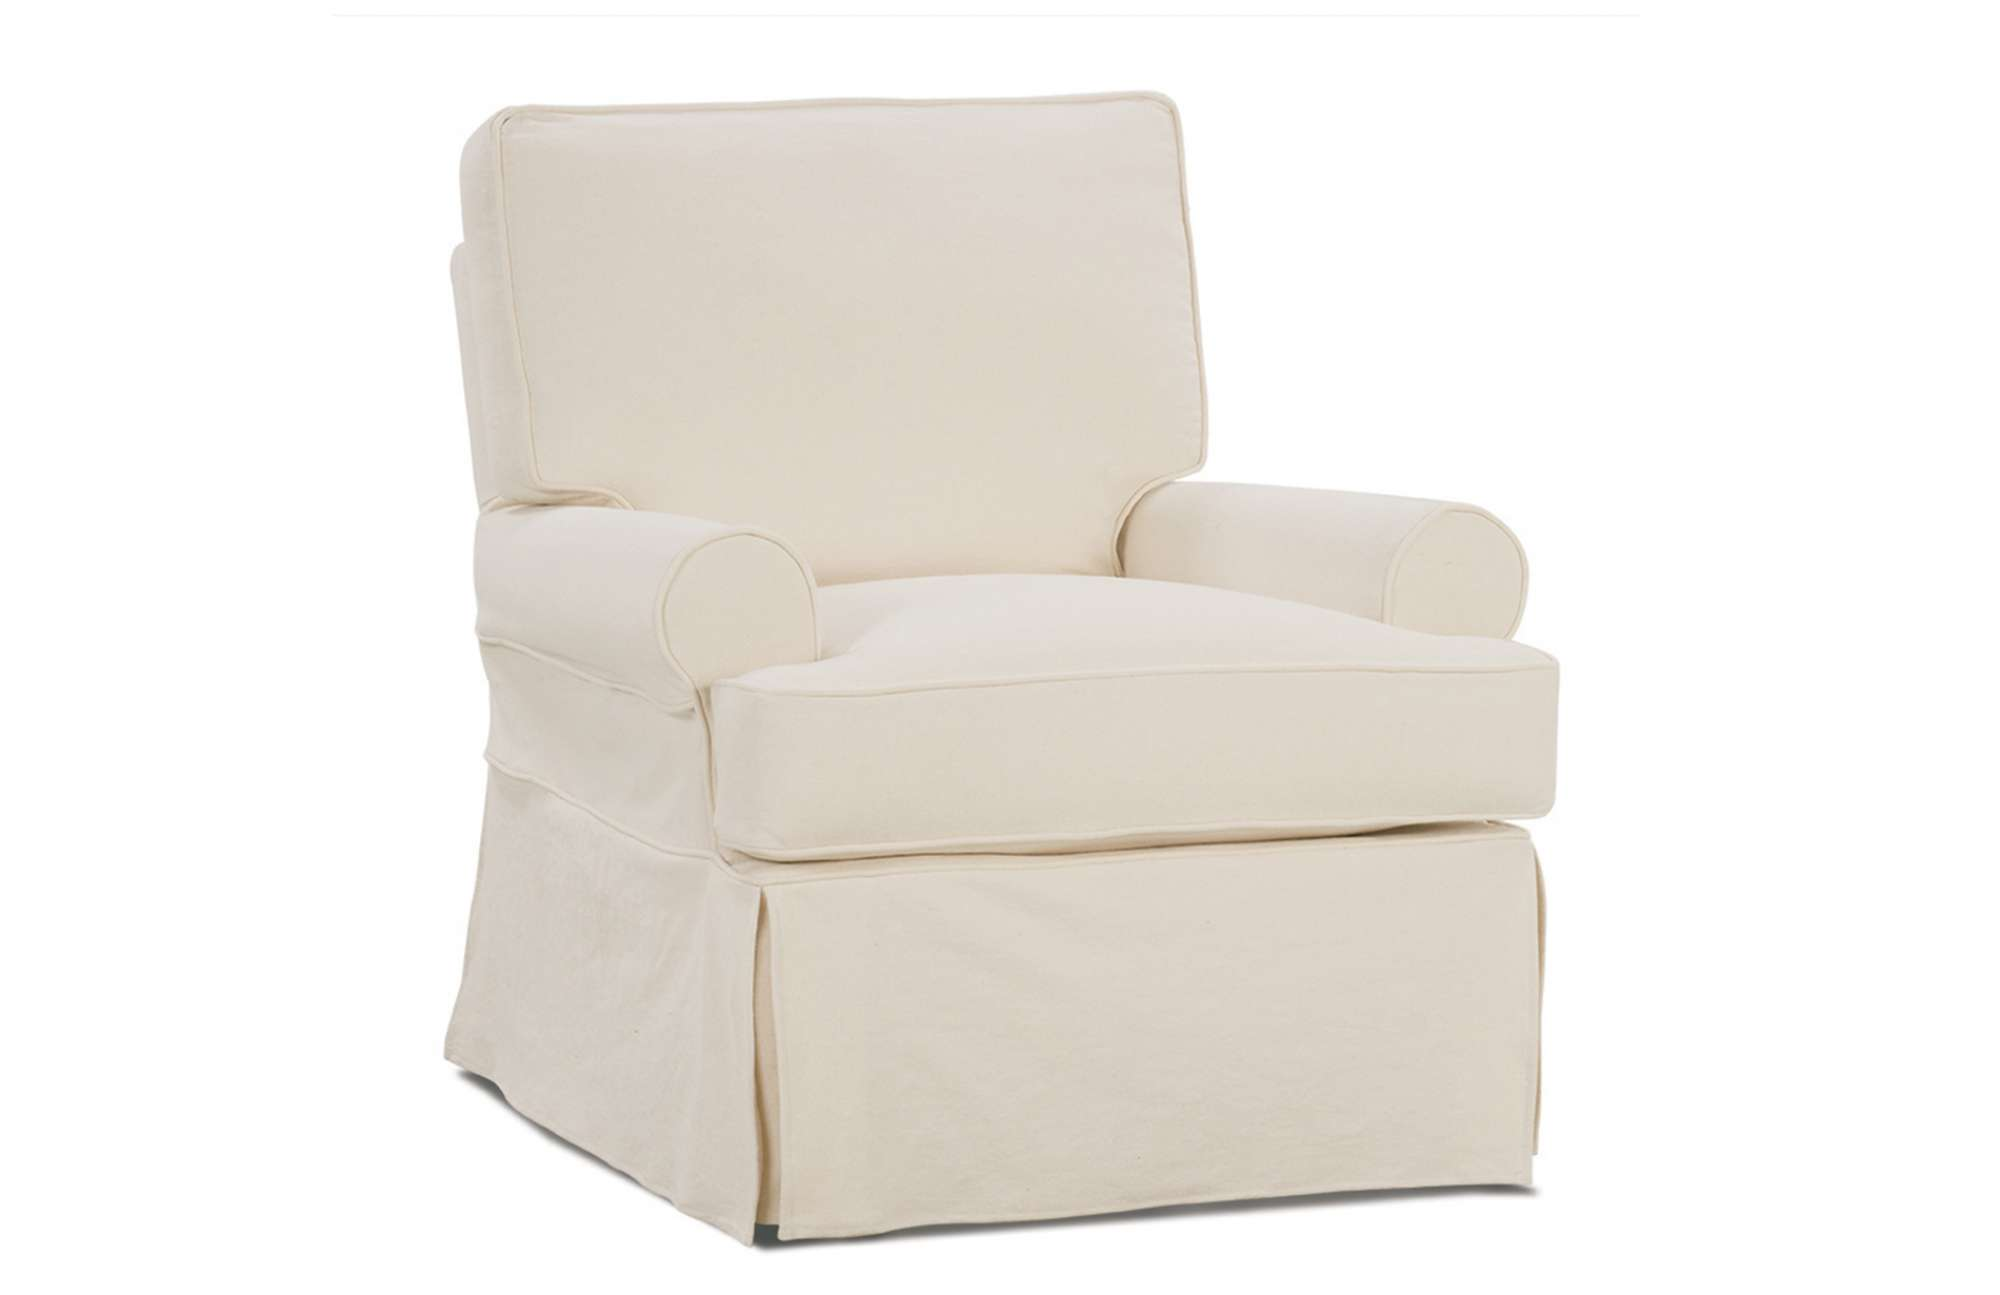 Couch Covers for Sectionals | Rowe Furniture Slipcovers | Chair and Ottoman Slipcovers